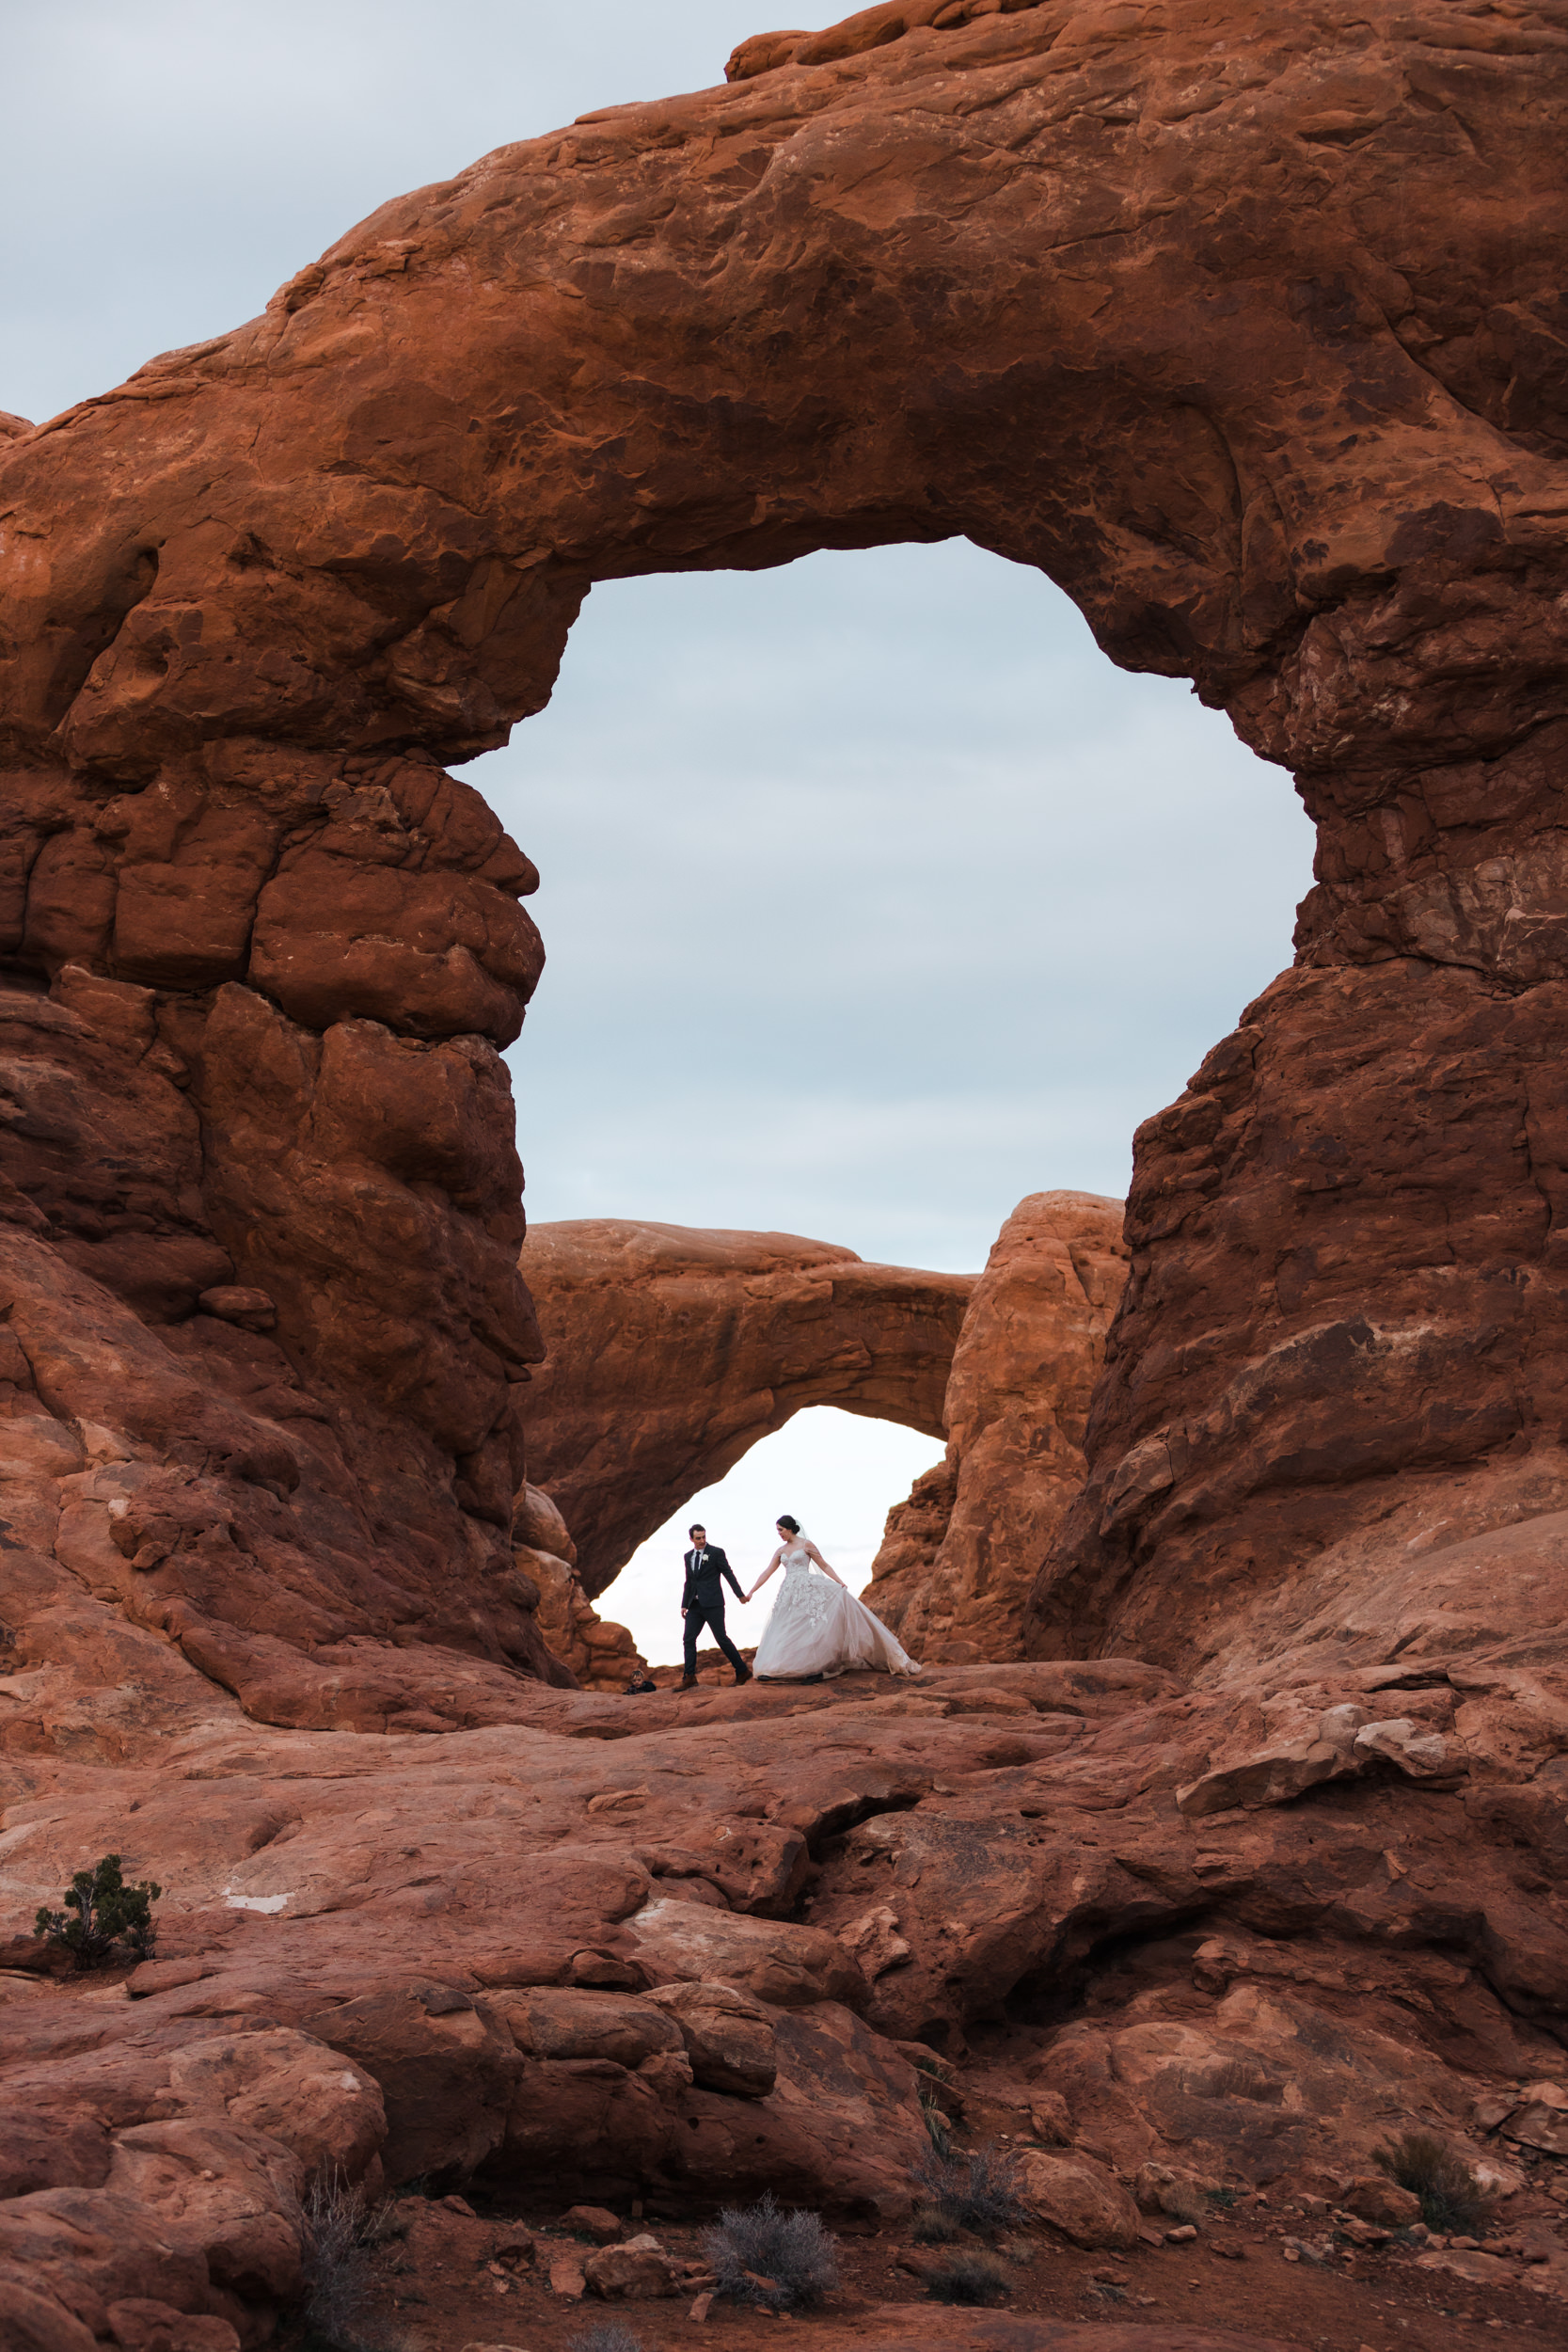 Turret Arch is one of the best places for photography in Arches National Park.